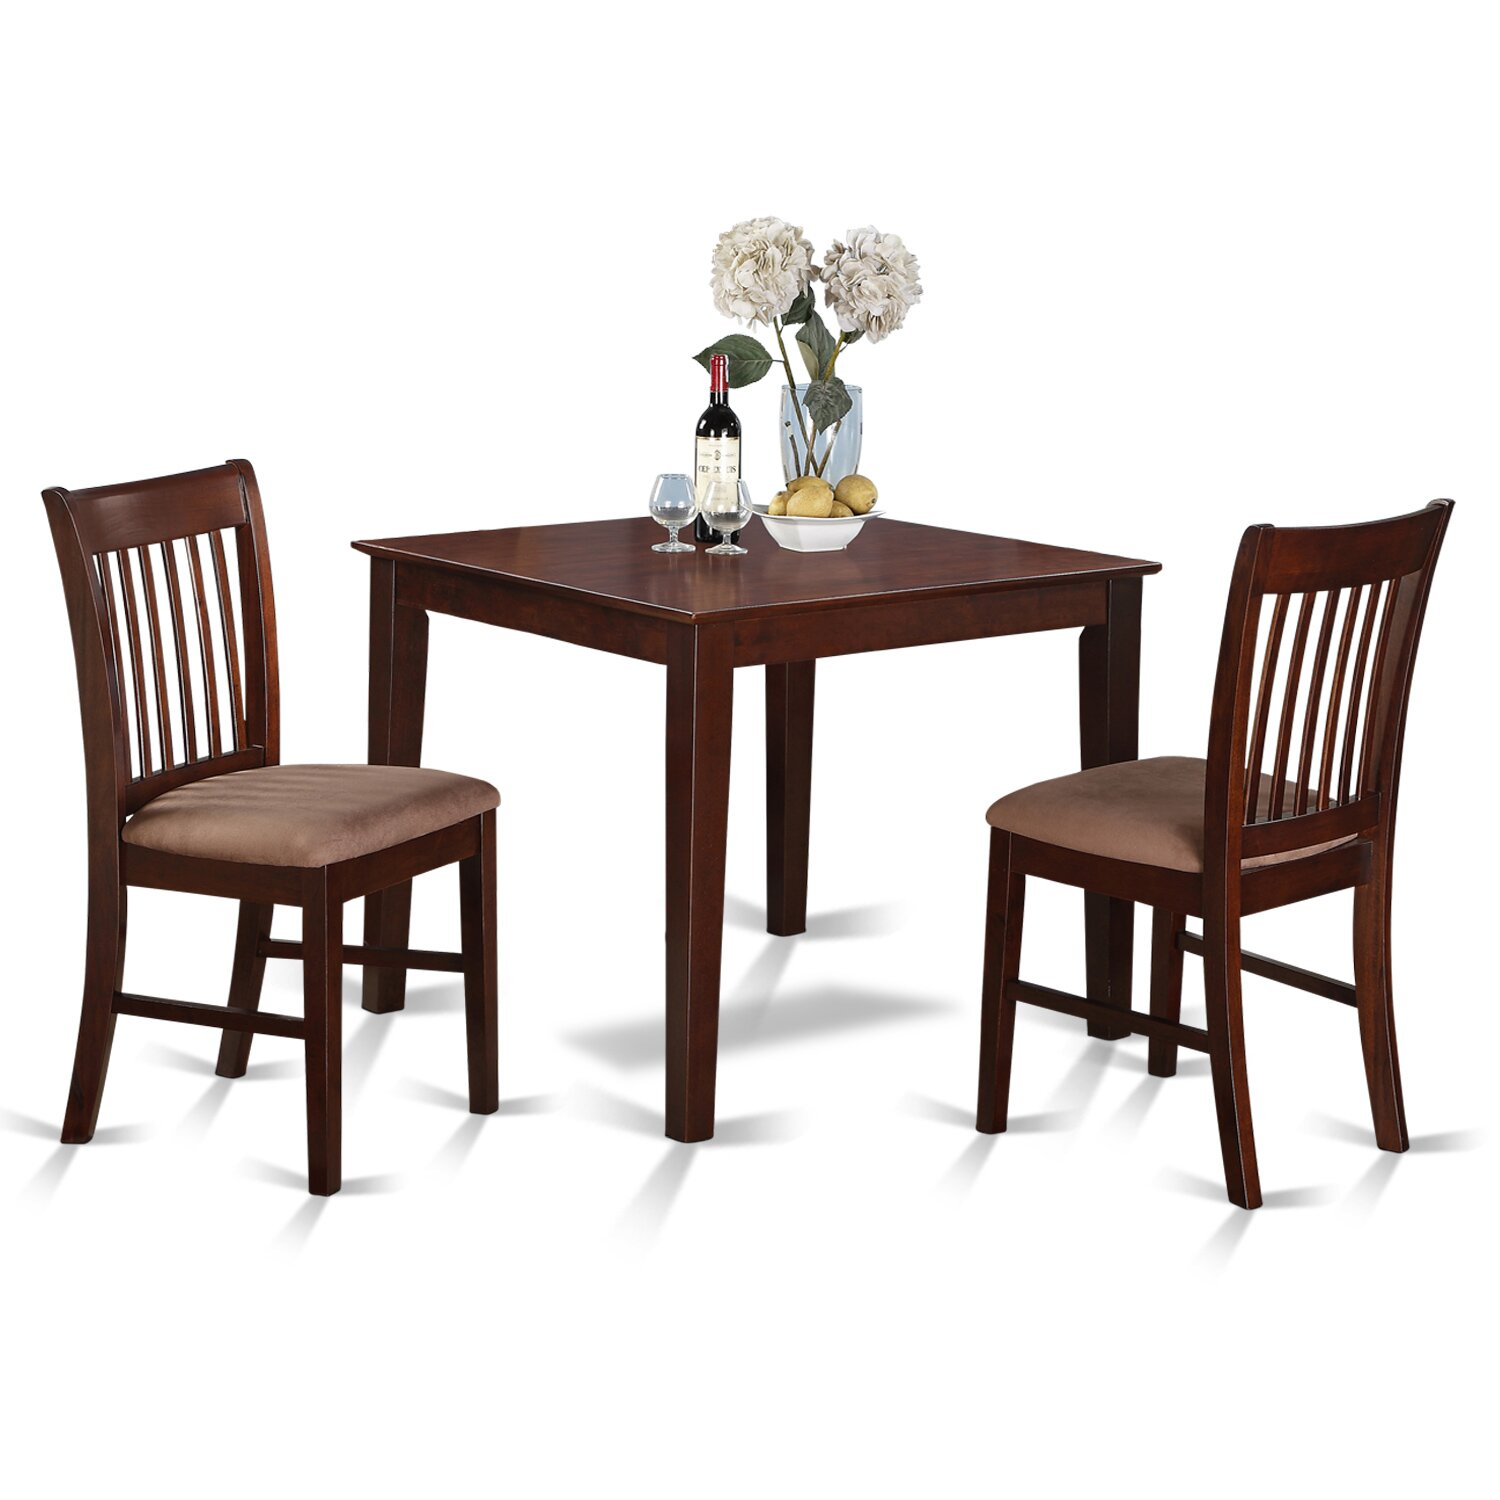 3 Piece Kitchen Nook Dining Set Small Kitchen Table And 2: Alcott Hill Lennox 3 Piece Dining Set & Reviews